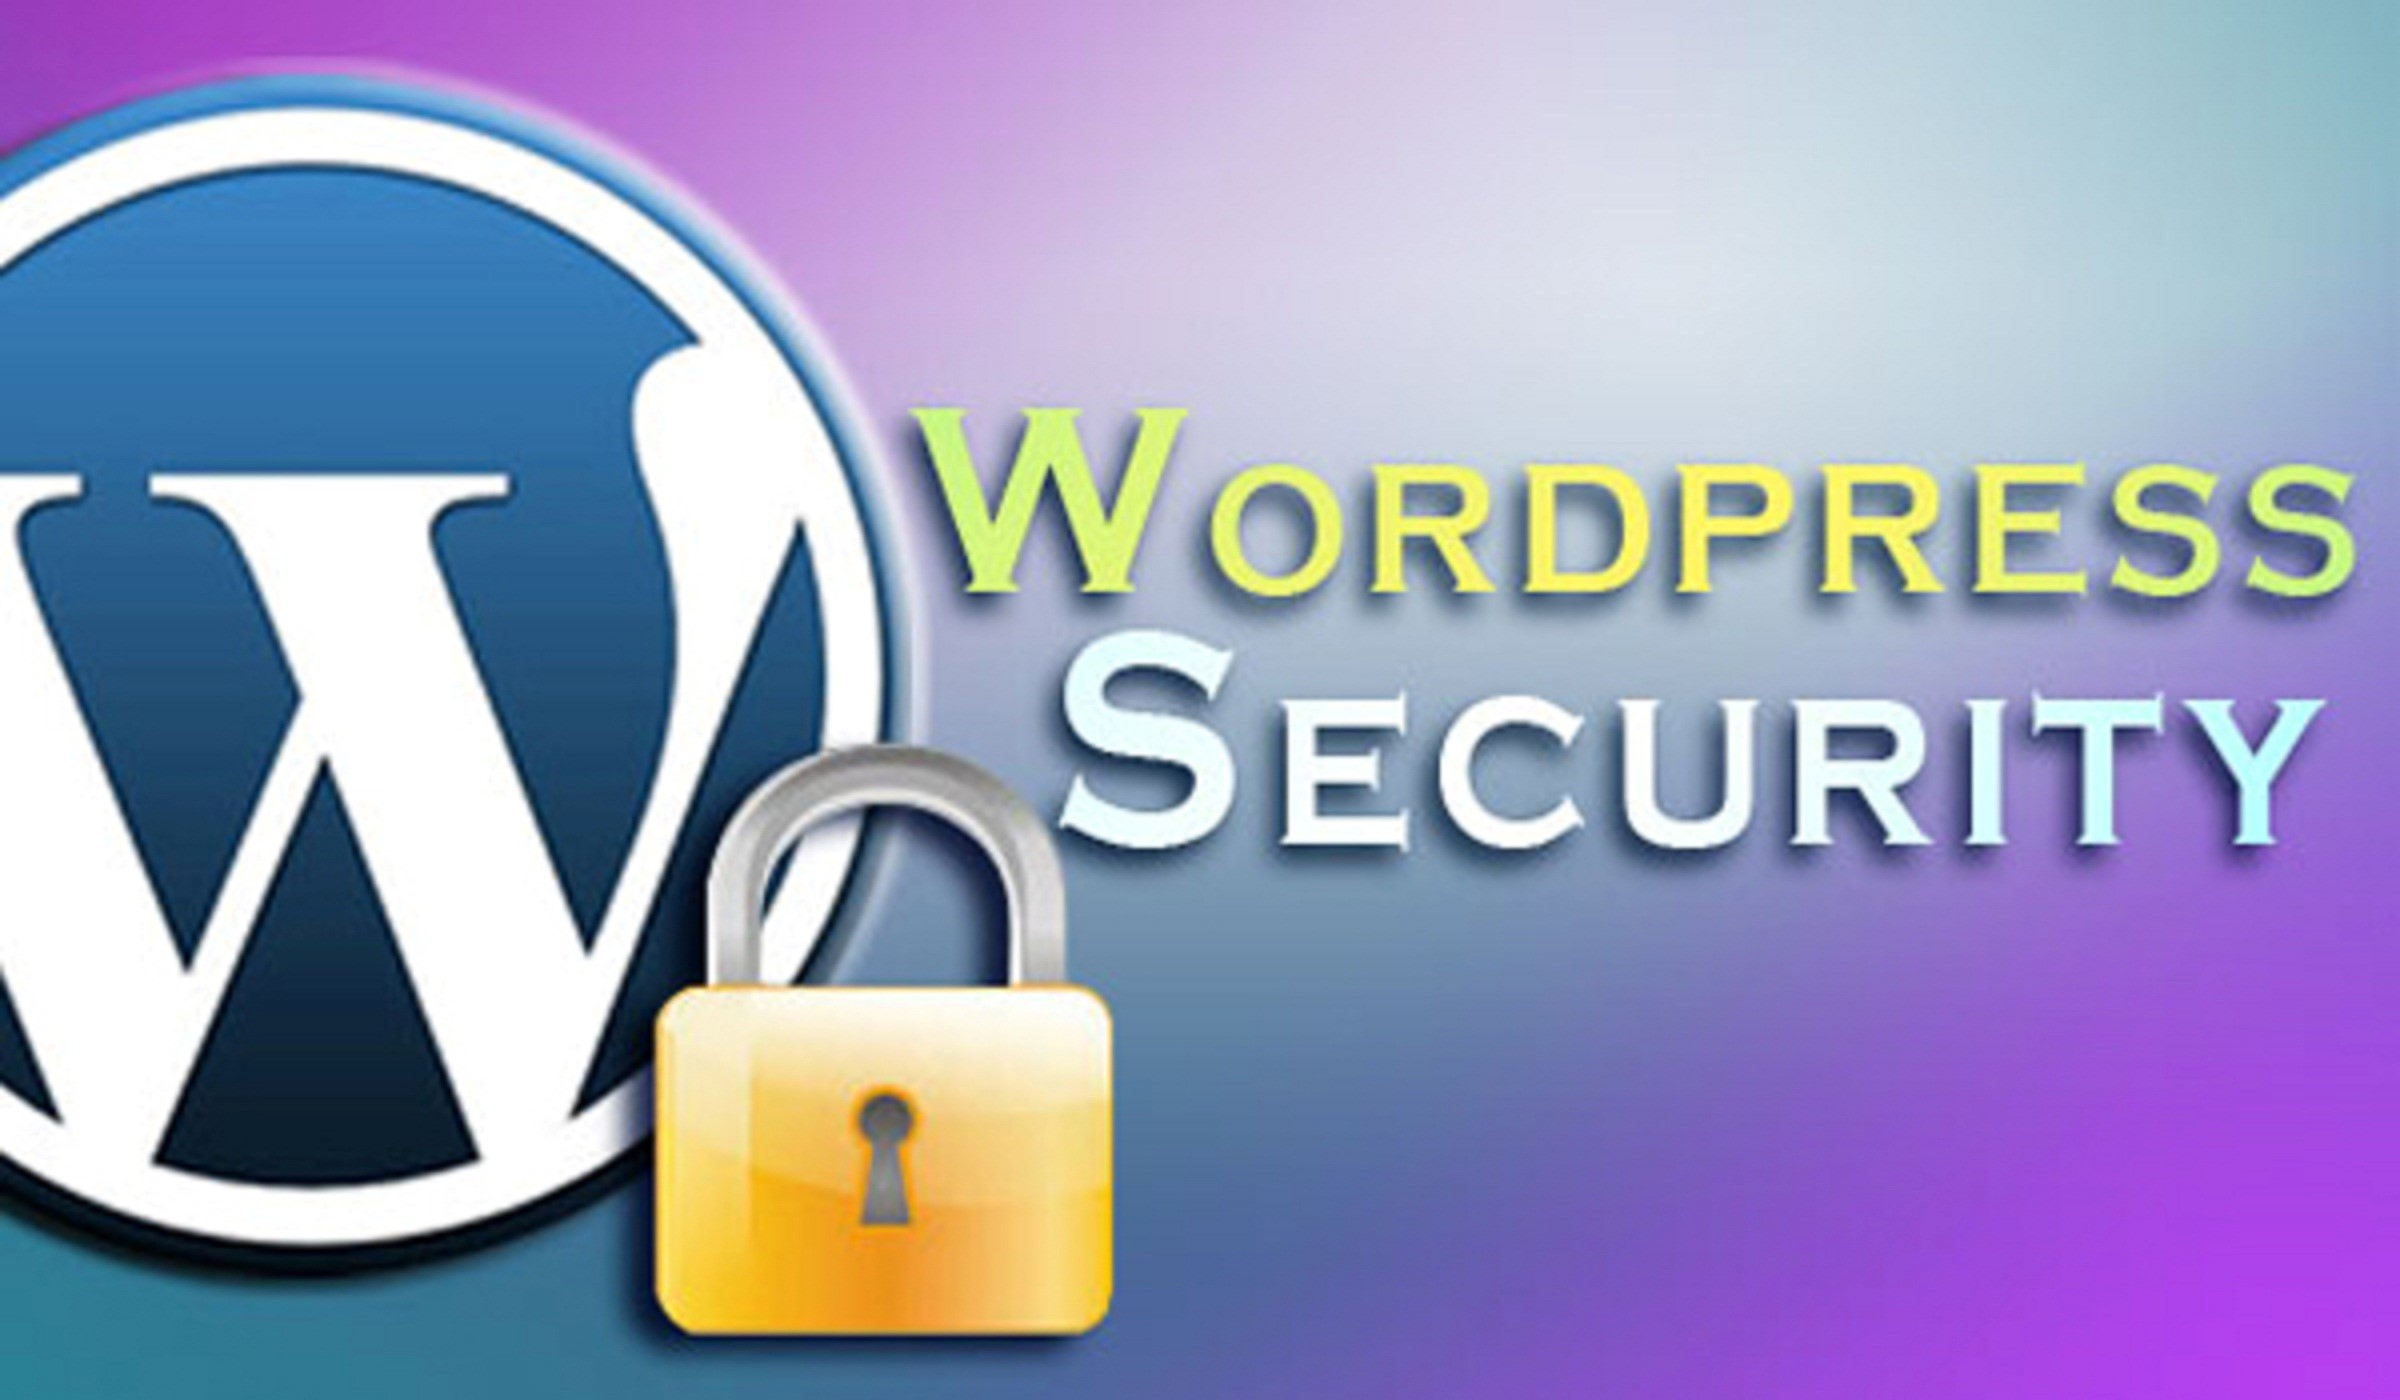 Can I Run My WordPress Website without Any Security Plugins?